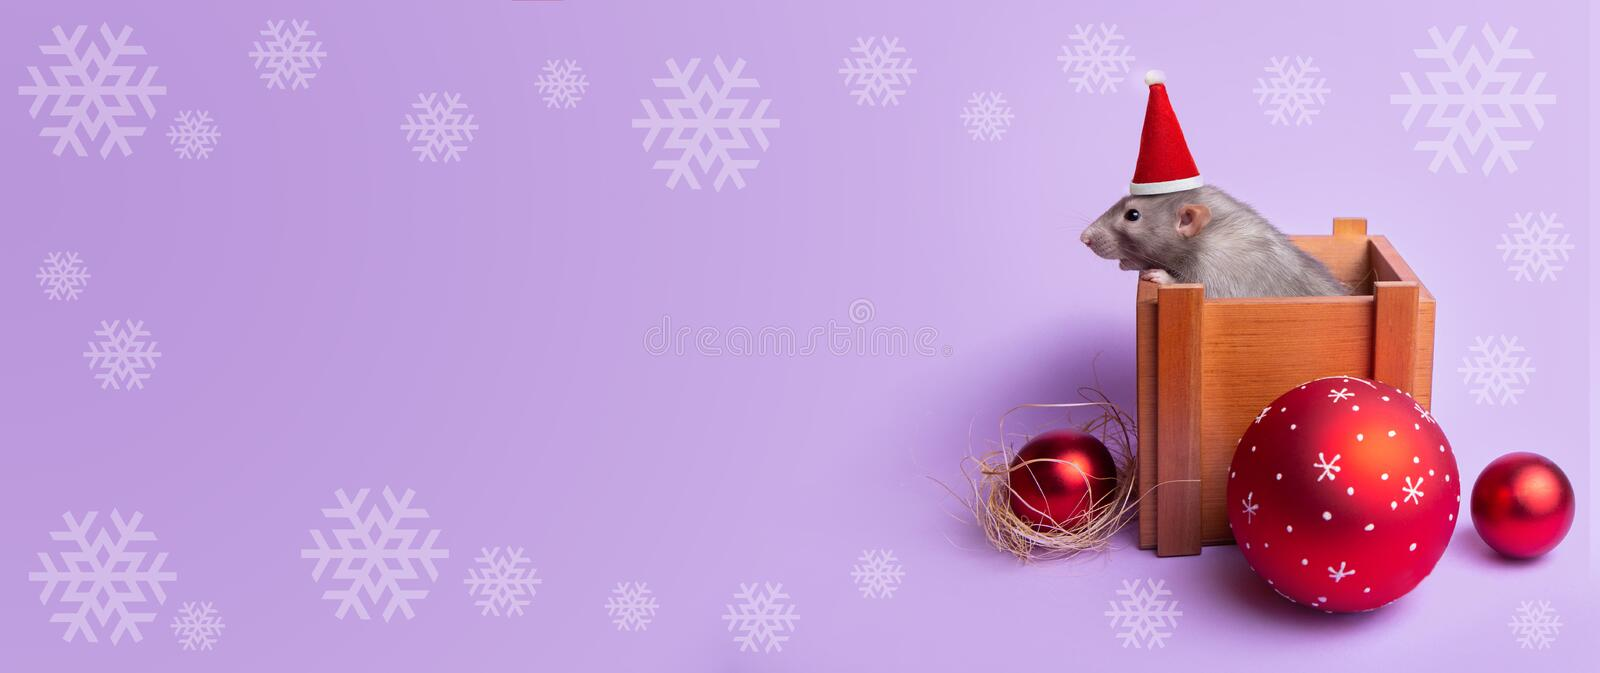 Charming pet. Decorative rat dumbo in a wooden box on a lilac background. New Year`s toys. Year of the rat. Chinese New Year. Cop. Banner. Decorative rat dumbo royalty free stock photo